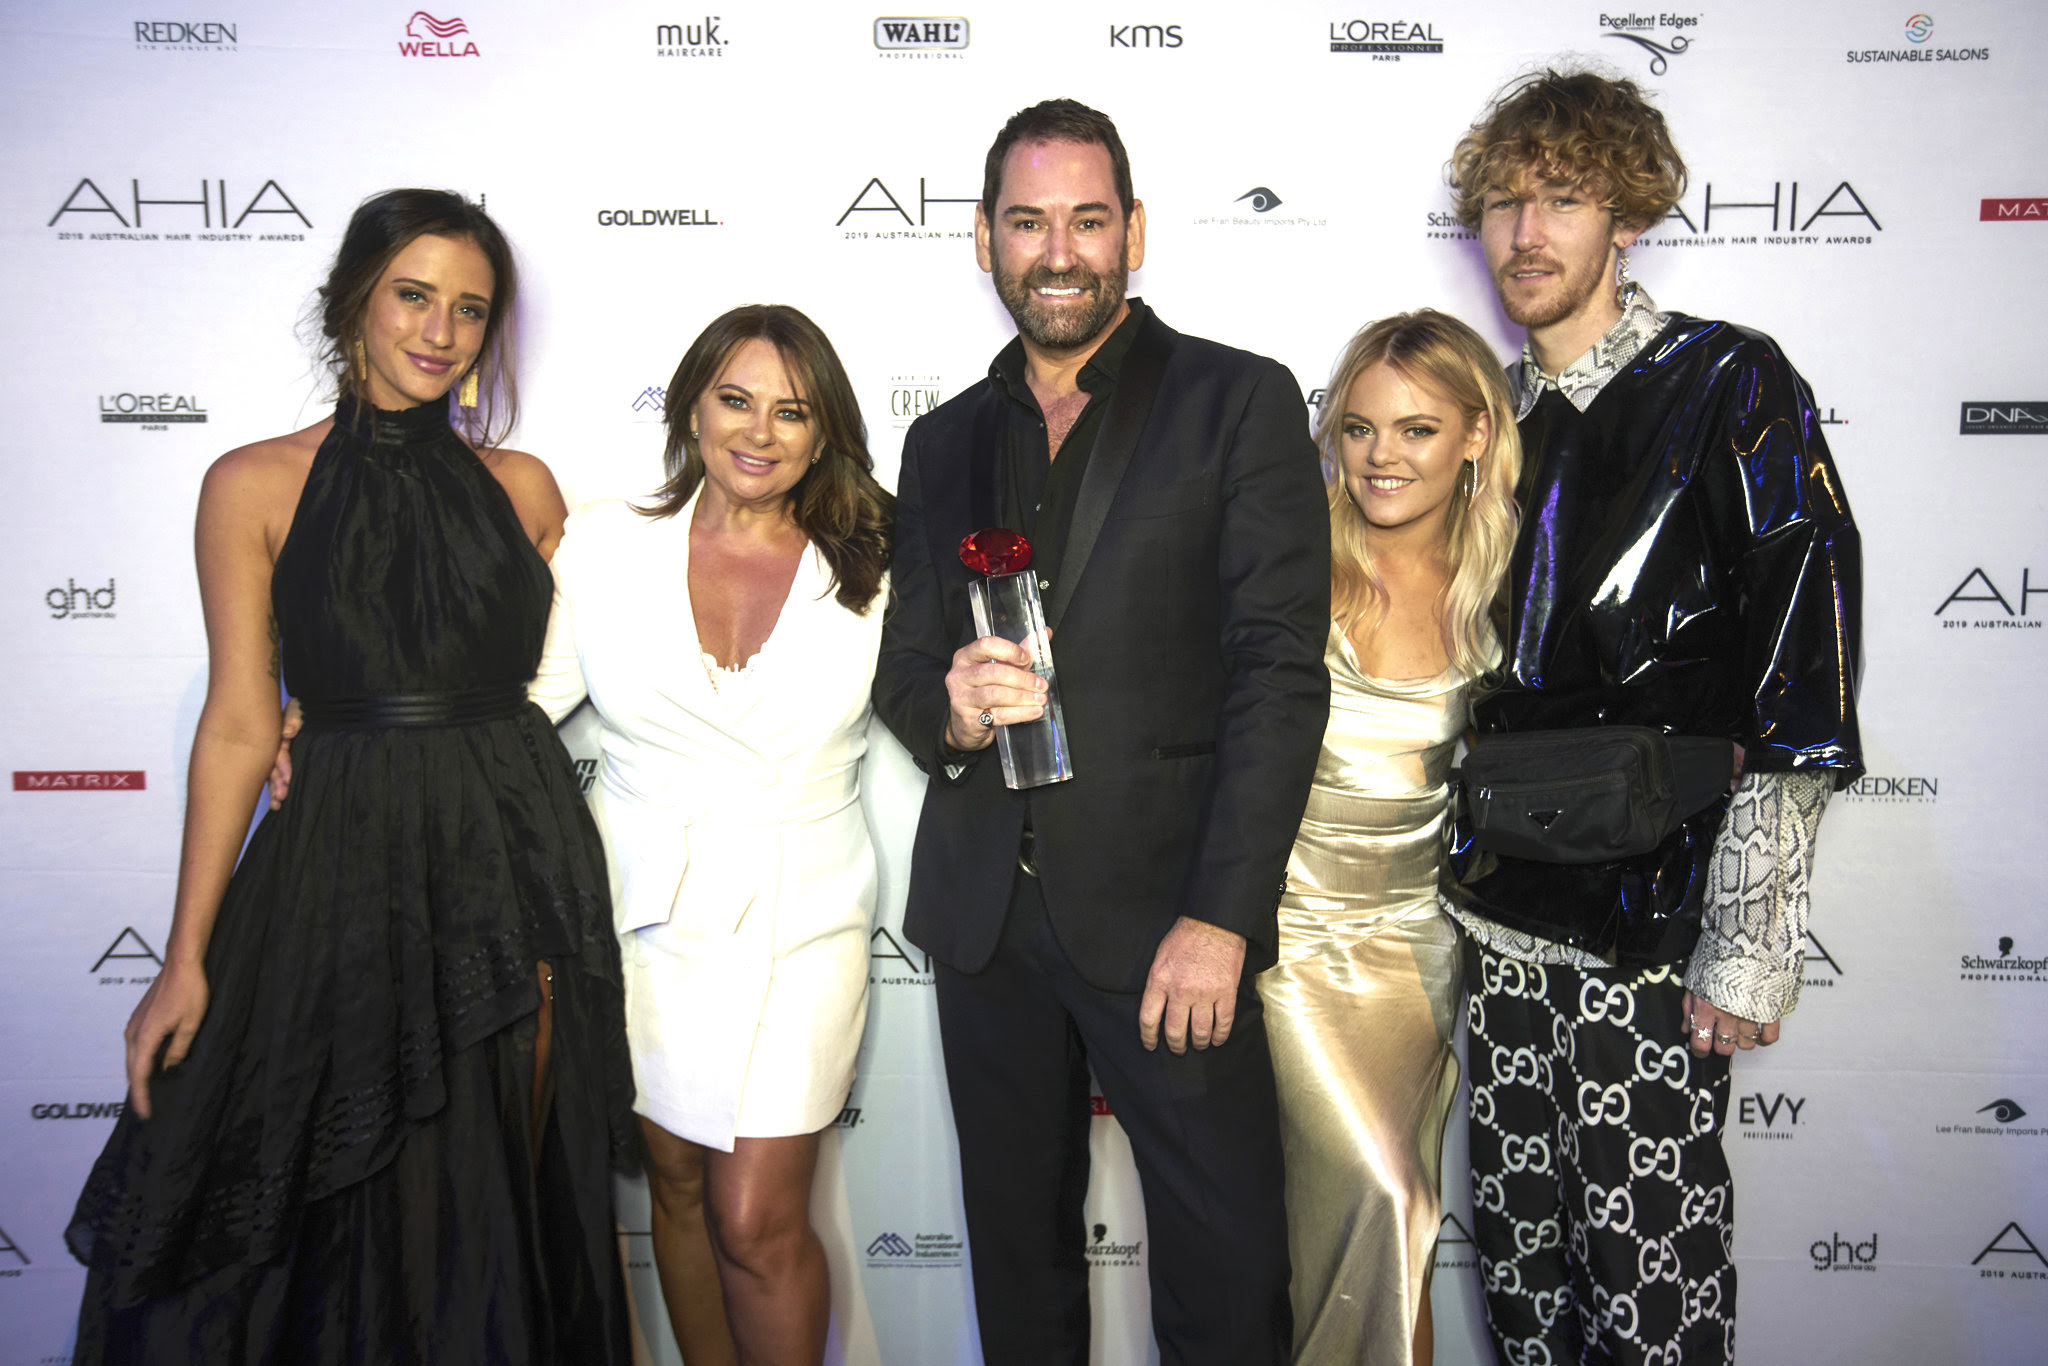 SLOANS NAMED AUSTRALIAN SALON BUSINESS OF THE YEAR AT THE